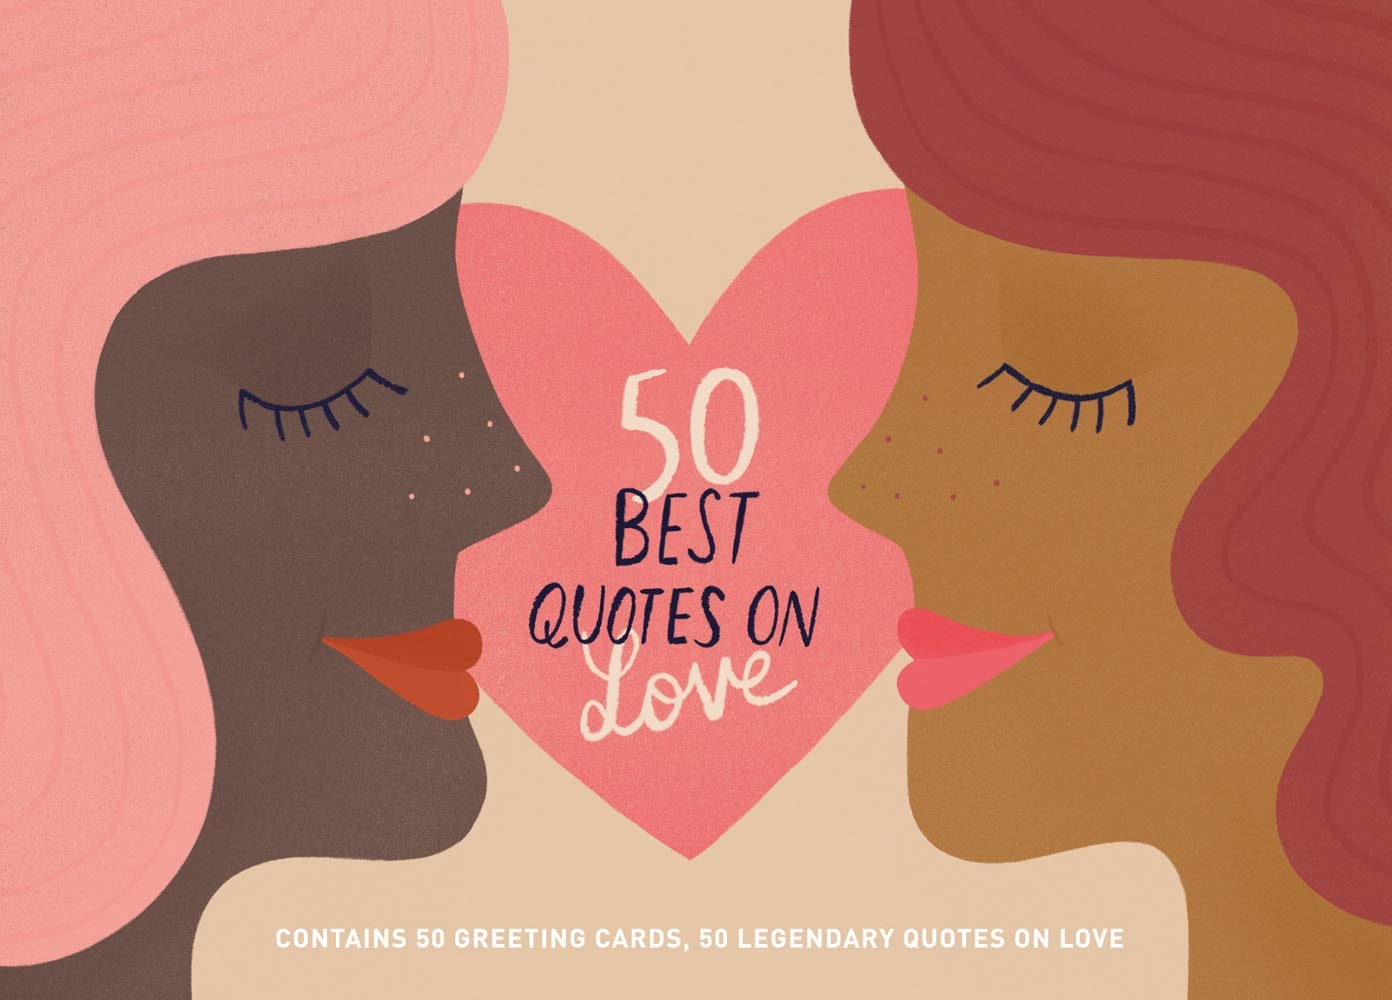 50 Best Quotes on Love